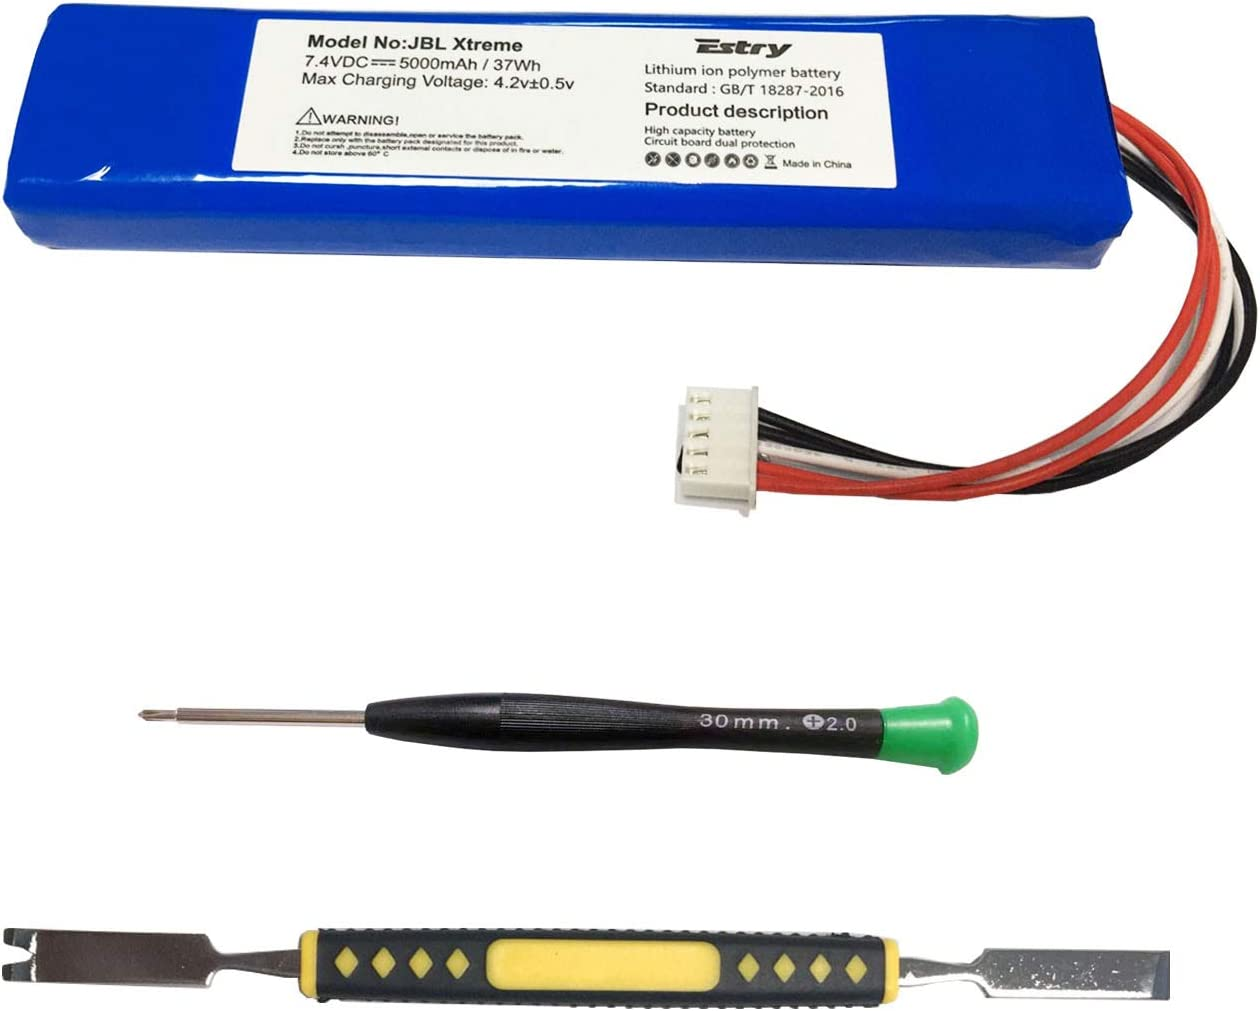 Estry Battery Replacement Kit for Extreme JBL overseas JBLXTREME Dedication G Xtreme